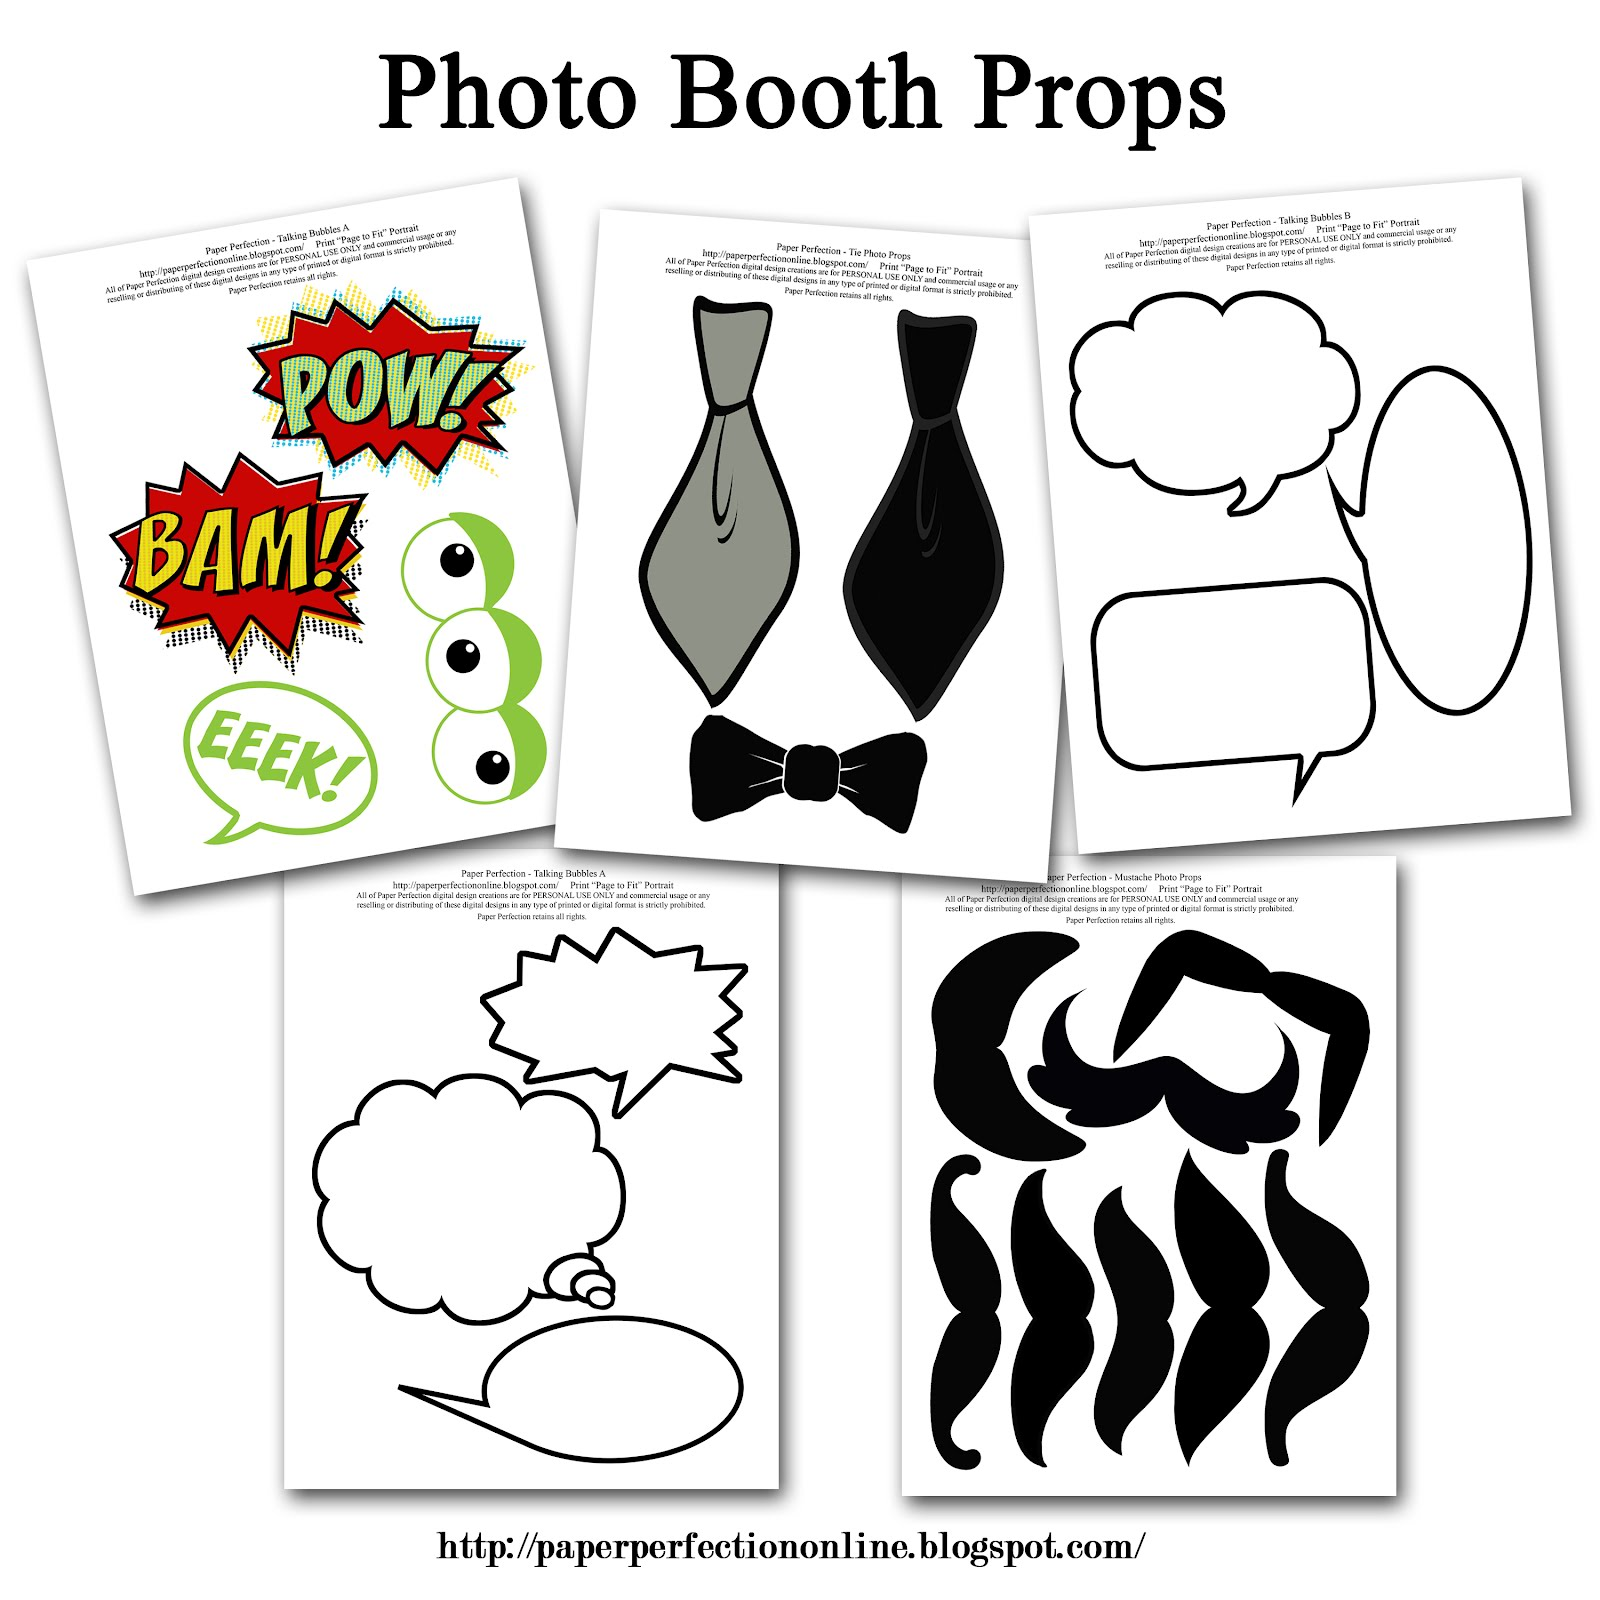 INSTANT DOWNLOAD Wedding Photo Booth Props Printable PDF |Printable Photo Booth Sayings